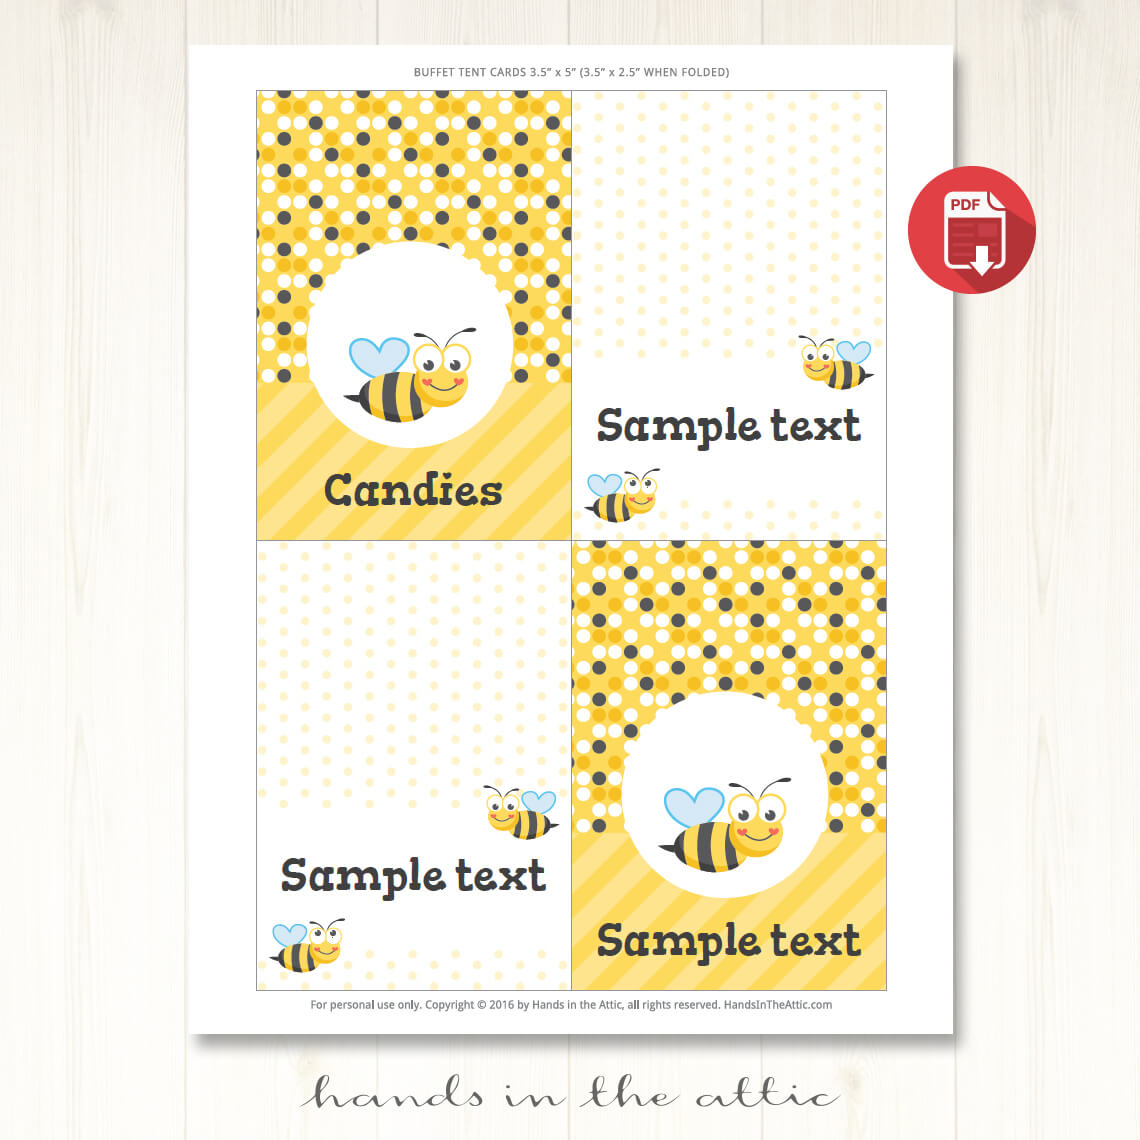 bumble bee party tent cards template